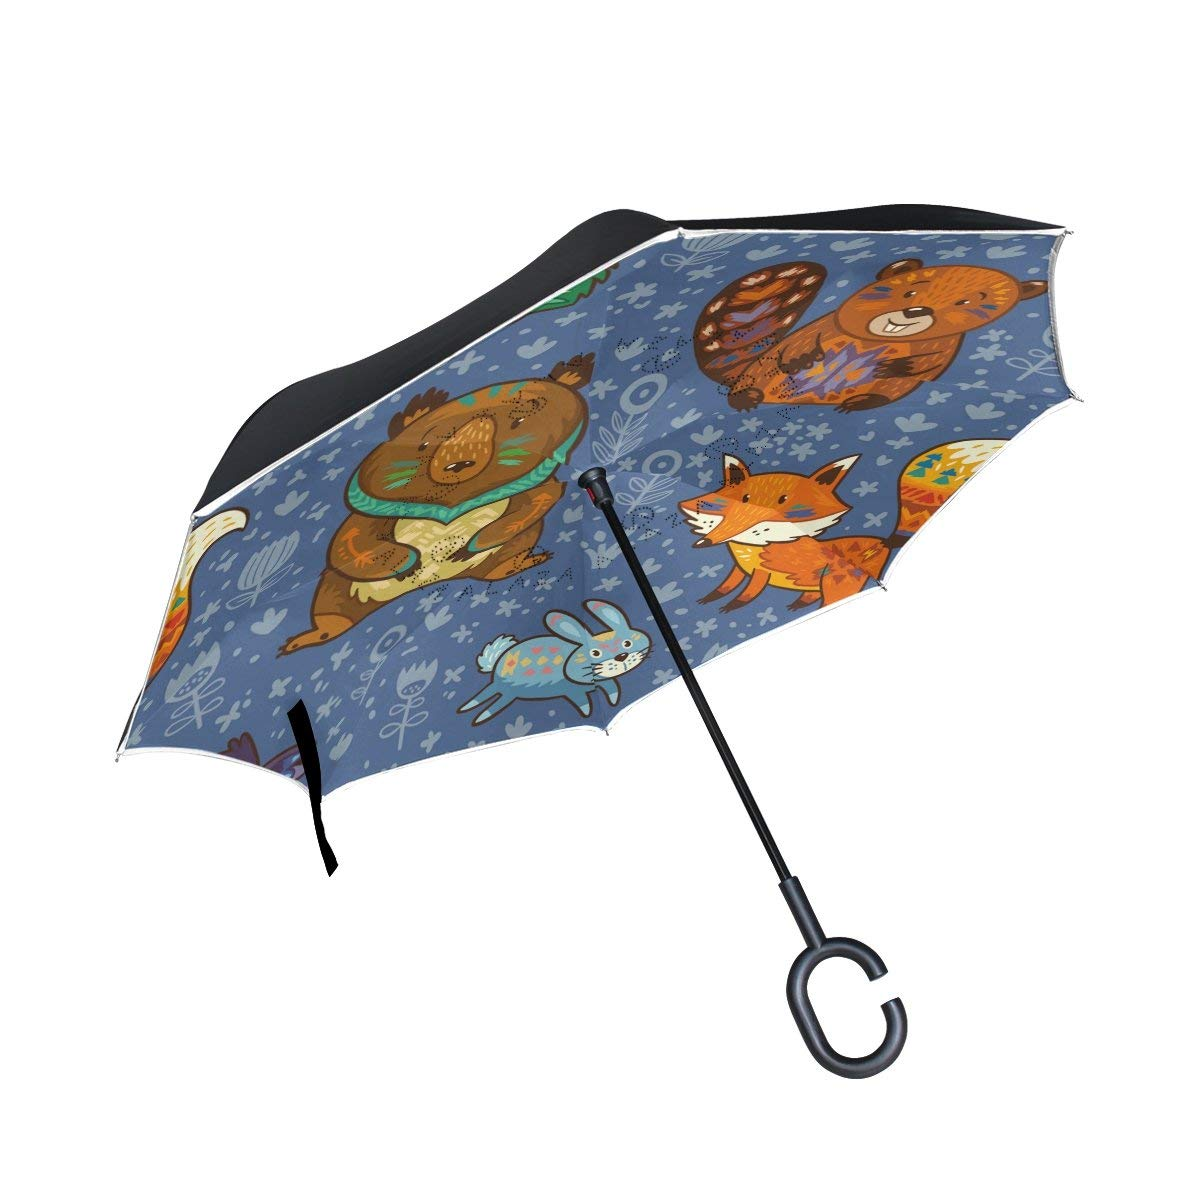 Reverse Inverted Windproof Cute Sloths Sleeping Umbrella Double Layer Inside Out Folding Umbrella Upside Down Umbrellas with C-Shaped Handle for Women and Men